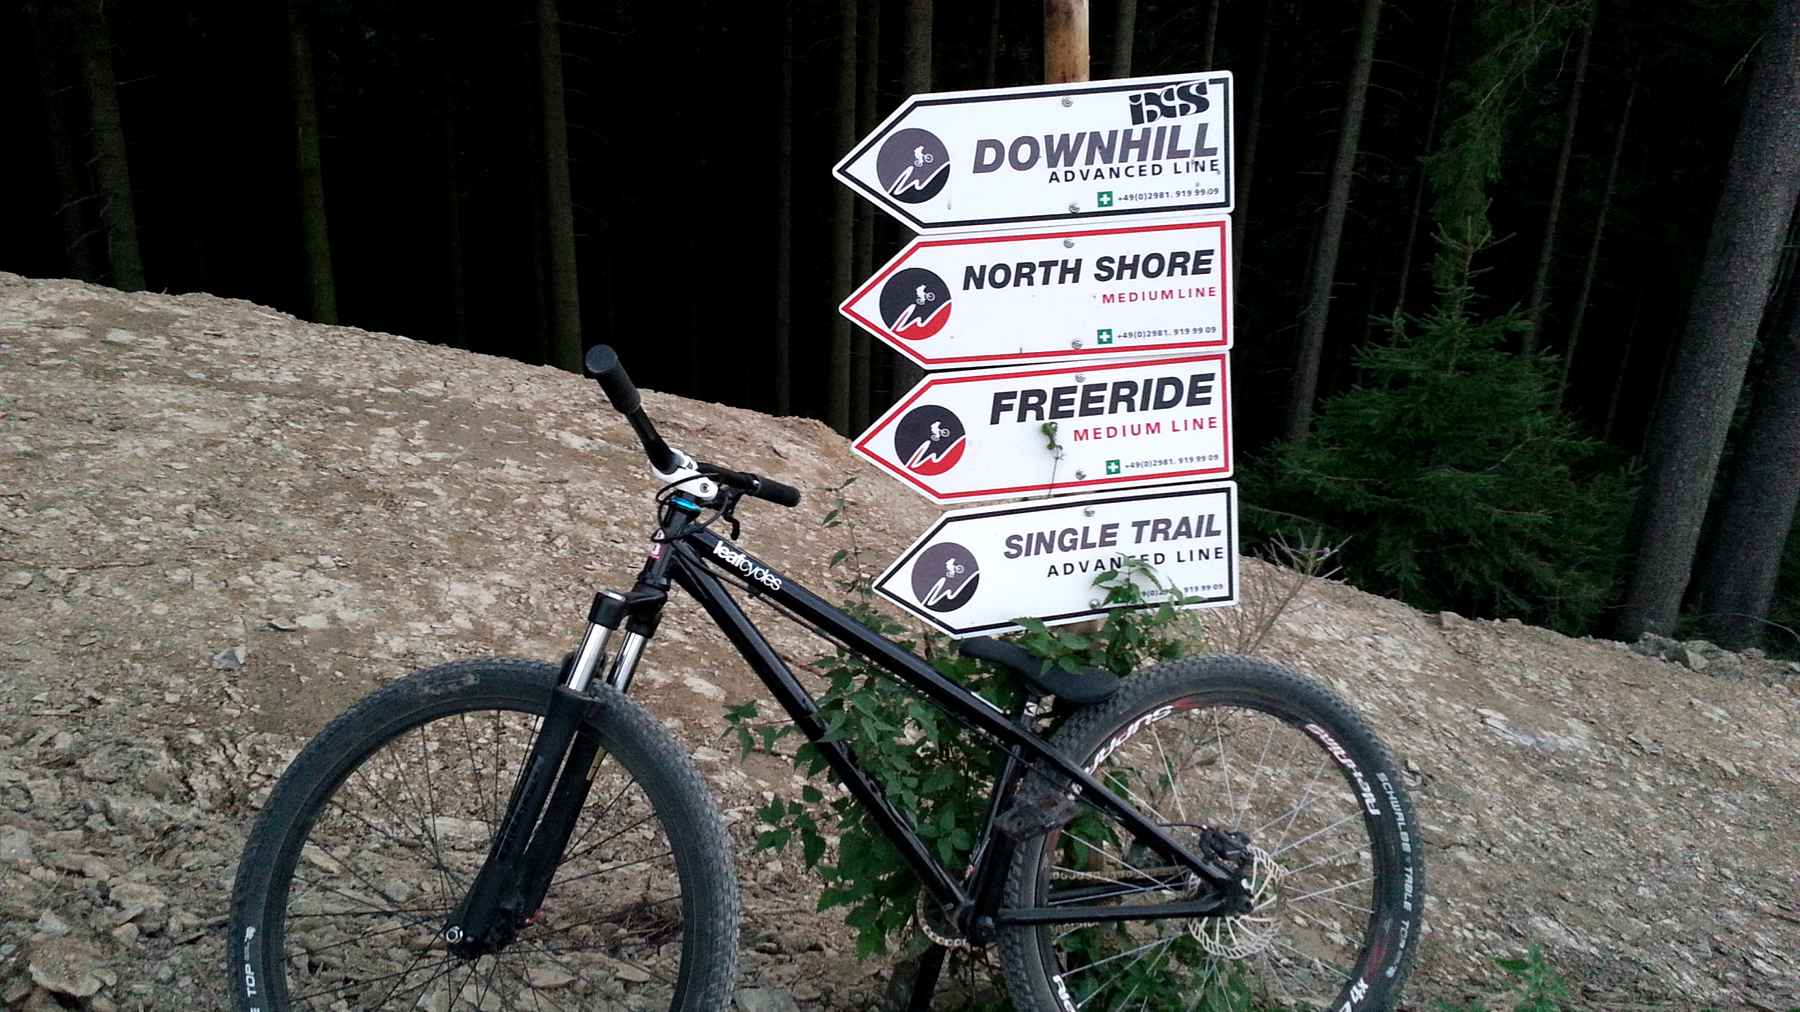 On the road: Kurzbesuch im Bikepark Winterberg, Baustelle Continental Track